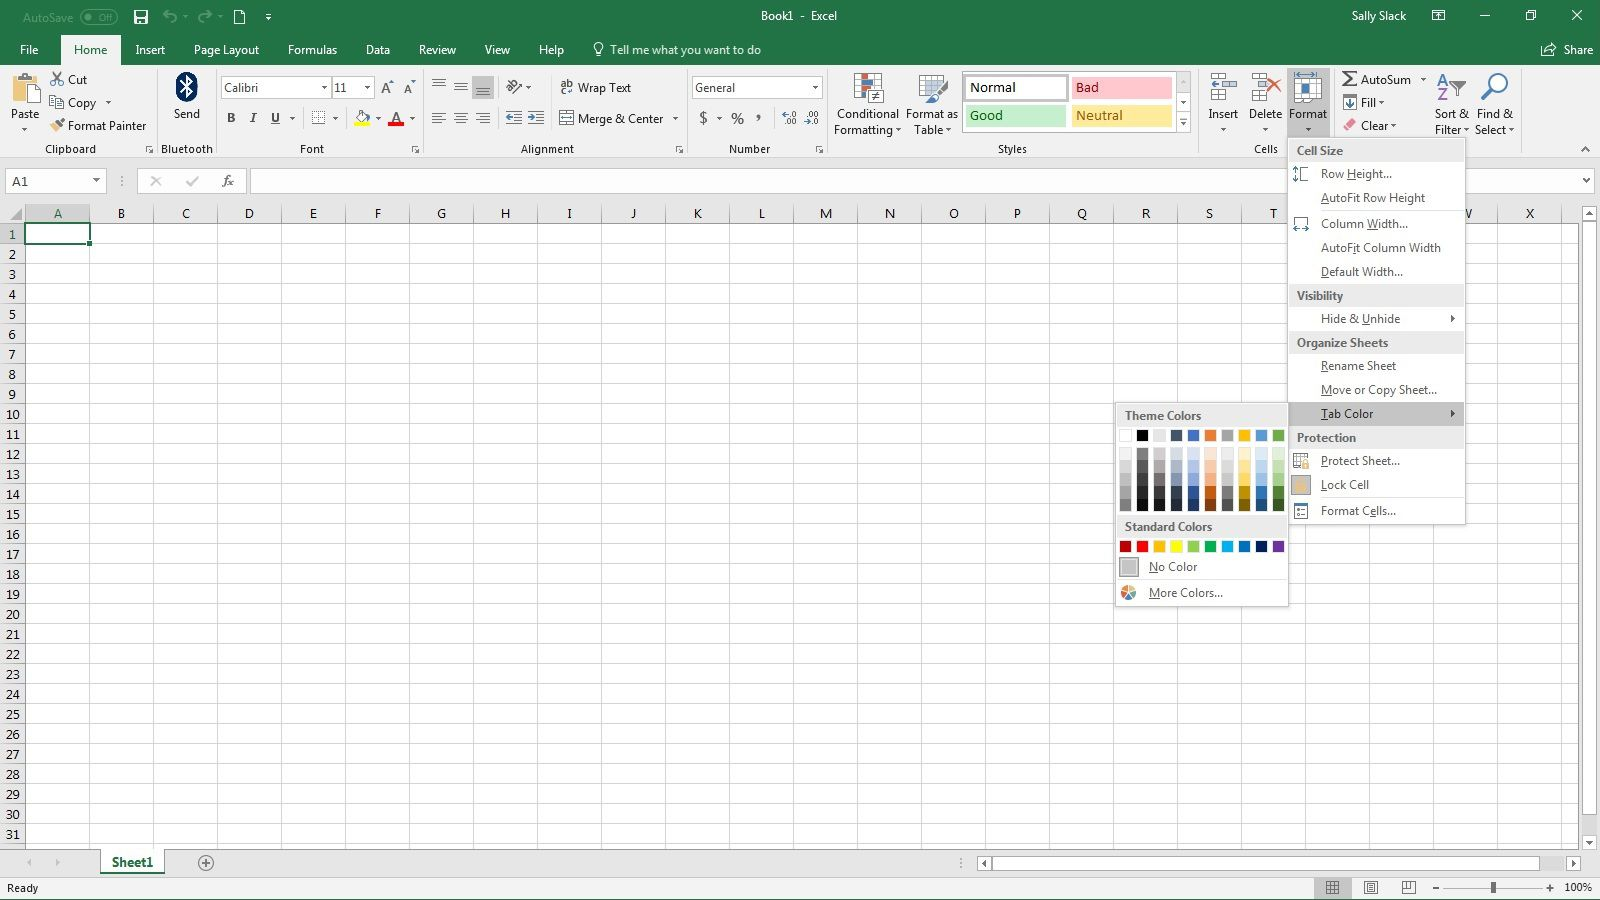 Worksheet Tabs Disappeared In Excel